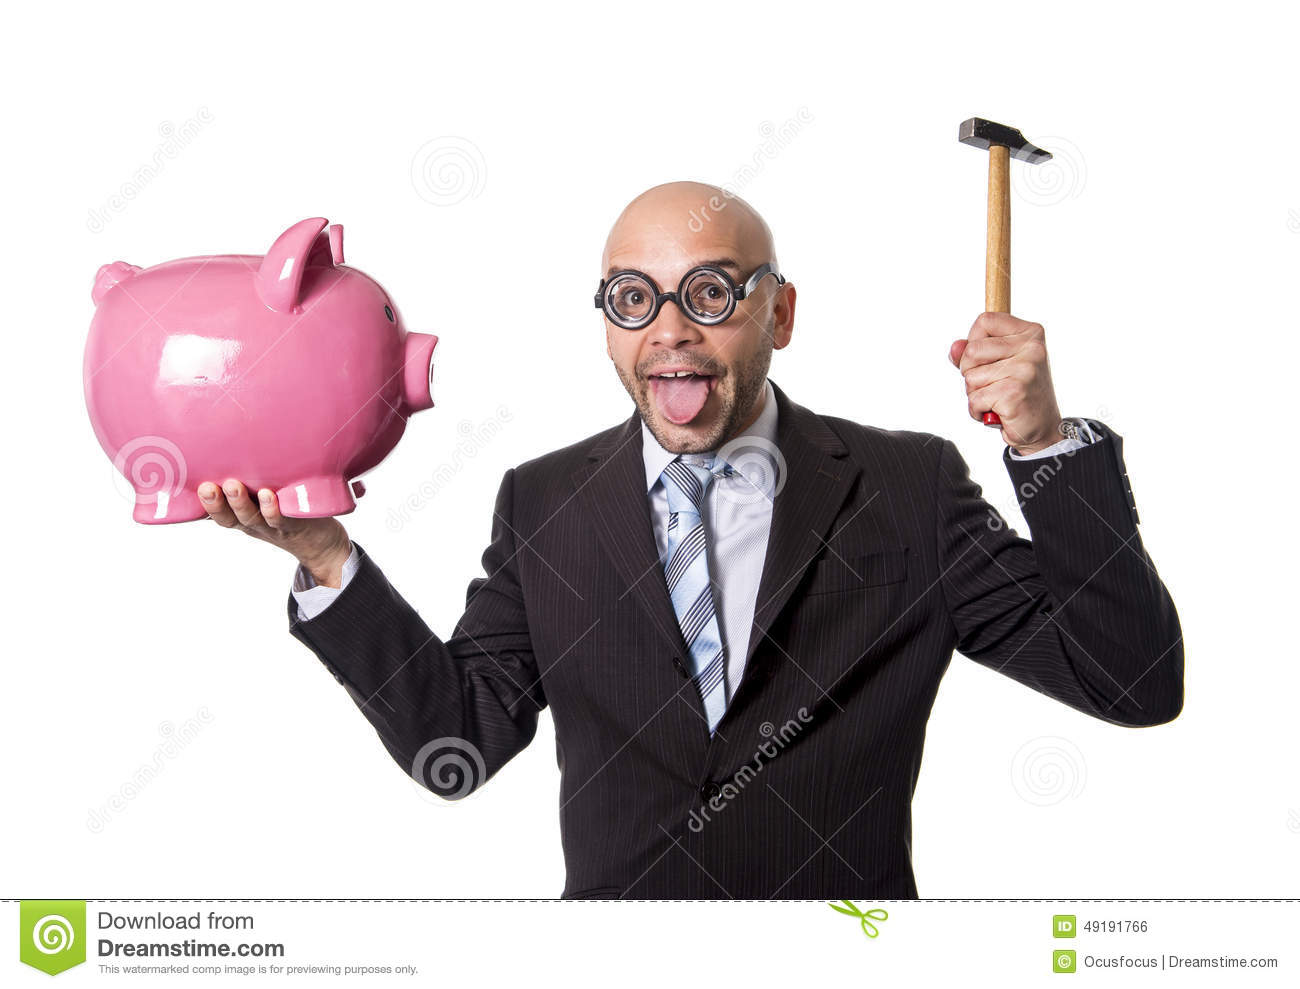 Bald nerdy businessman with geek glasses holding pink piggybank on his hand ready to break piggy bank with hammer